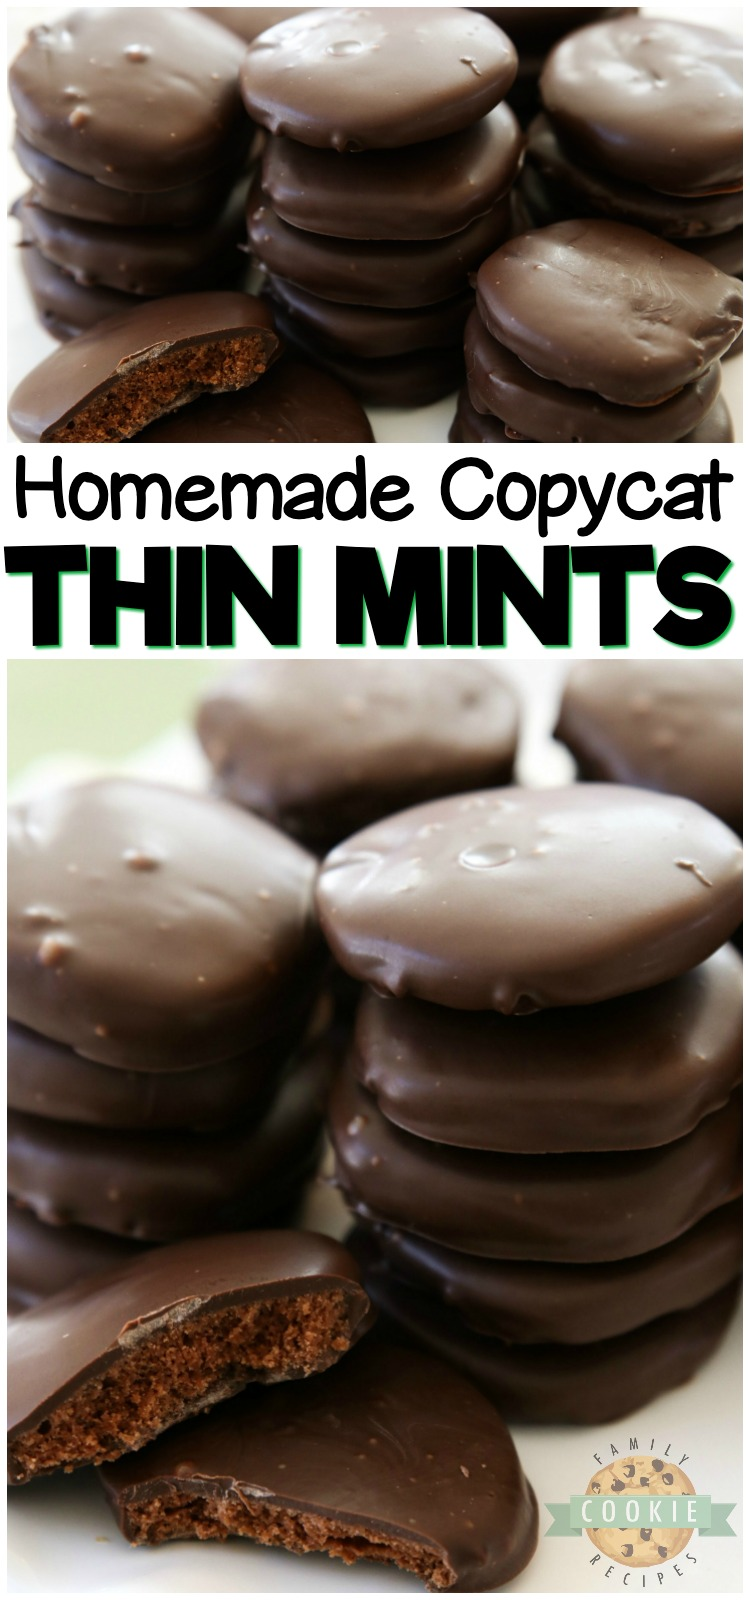 Thin Mints Cookies made with homemade buttery chocolate cookies dipped in mint fudge glaze. This simple recipe for copycat Thin Mints tastes even better than the original! #thinmints #thinmint #cookies #girlscout #baking #copycat #dessert #recipe from FAMILY COOKIE RECIPES